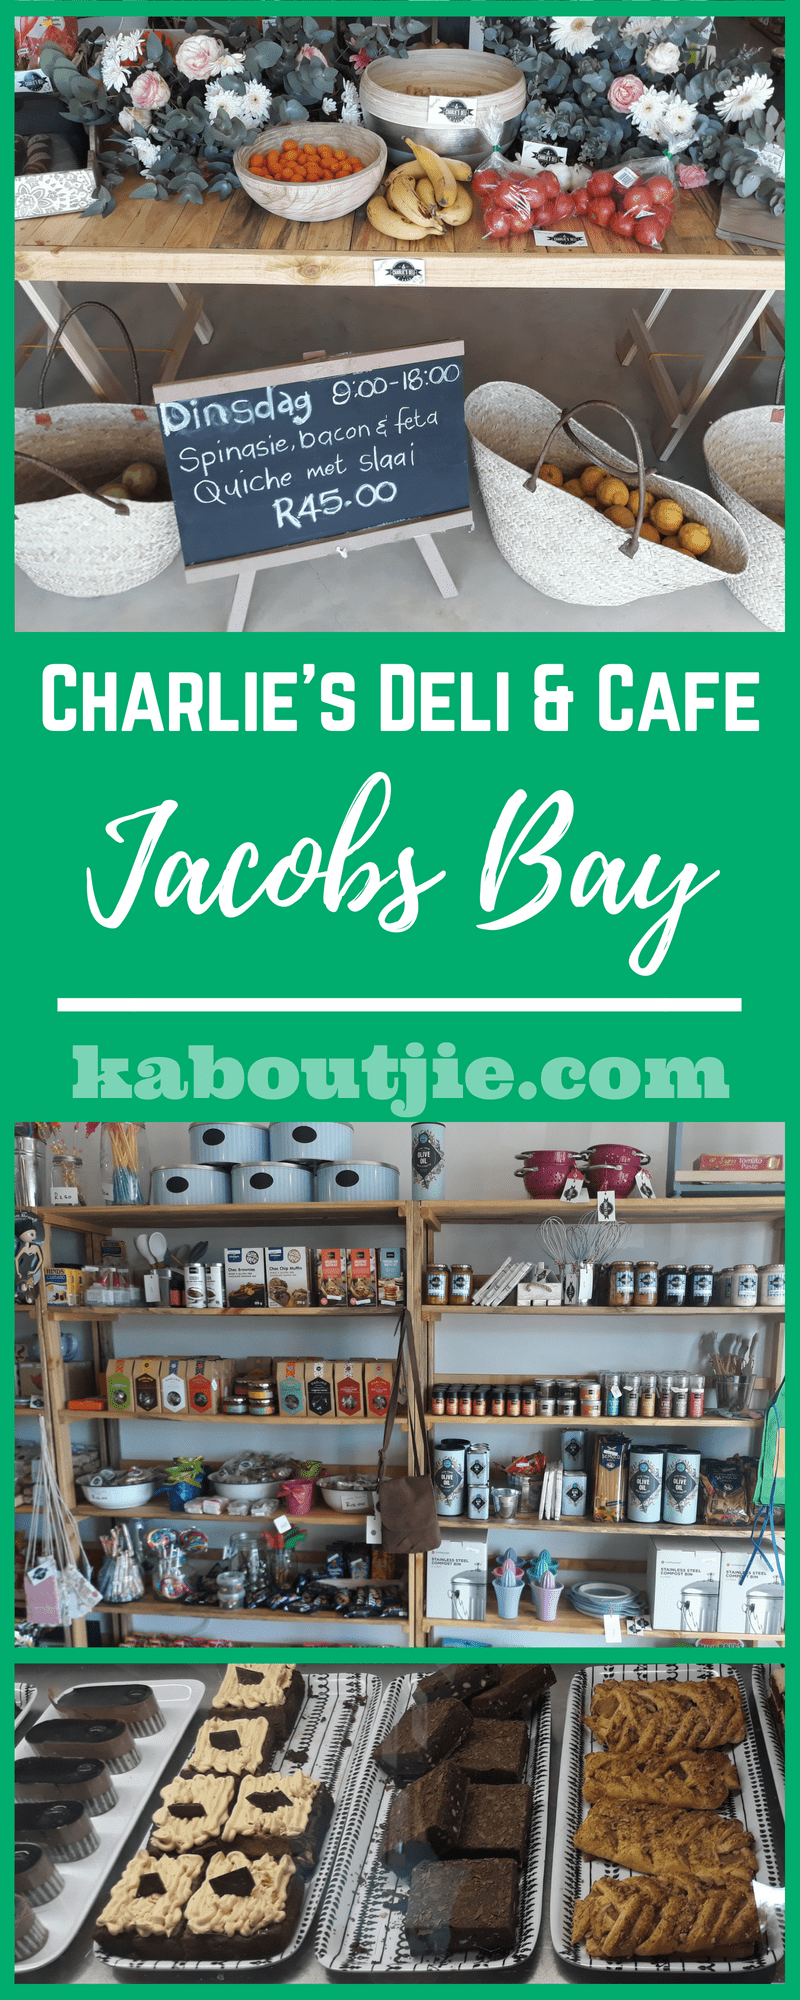 Charlie's Deli & Cafe Review - Jacobs Bay